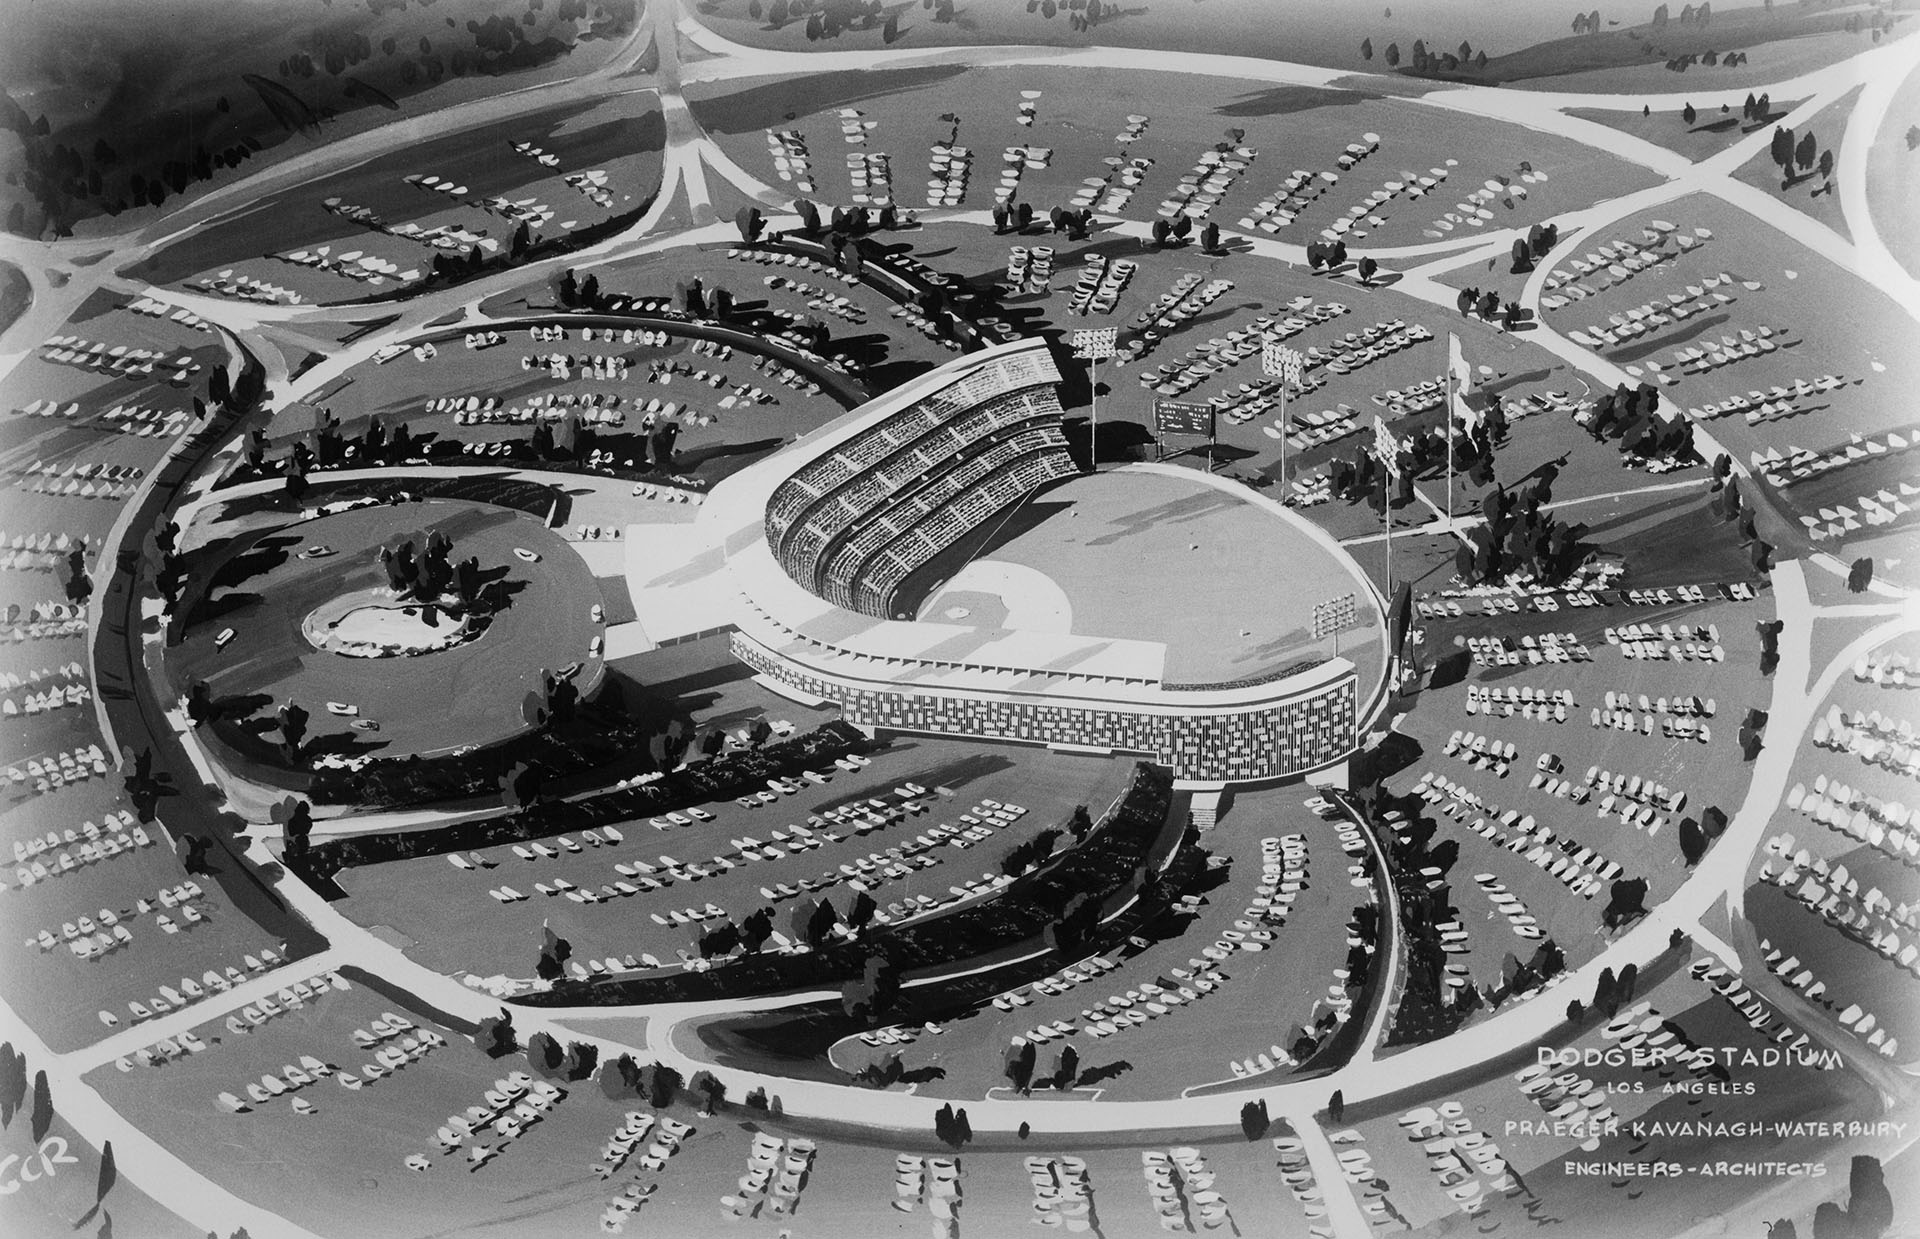 This 1959 architectural drawing of Dodger Stadium did not envision outfield pavilions, which were later added to the design. Courtesy of the USC Libraries - California Historical Society Collection.